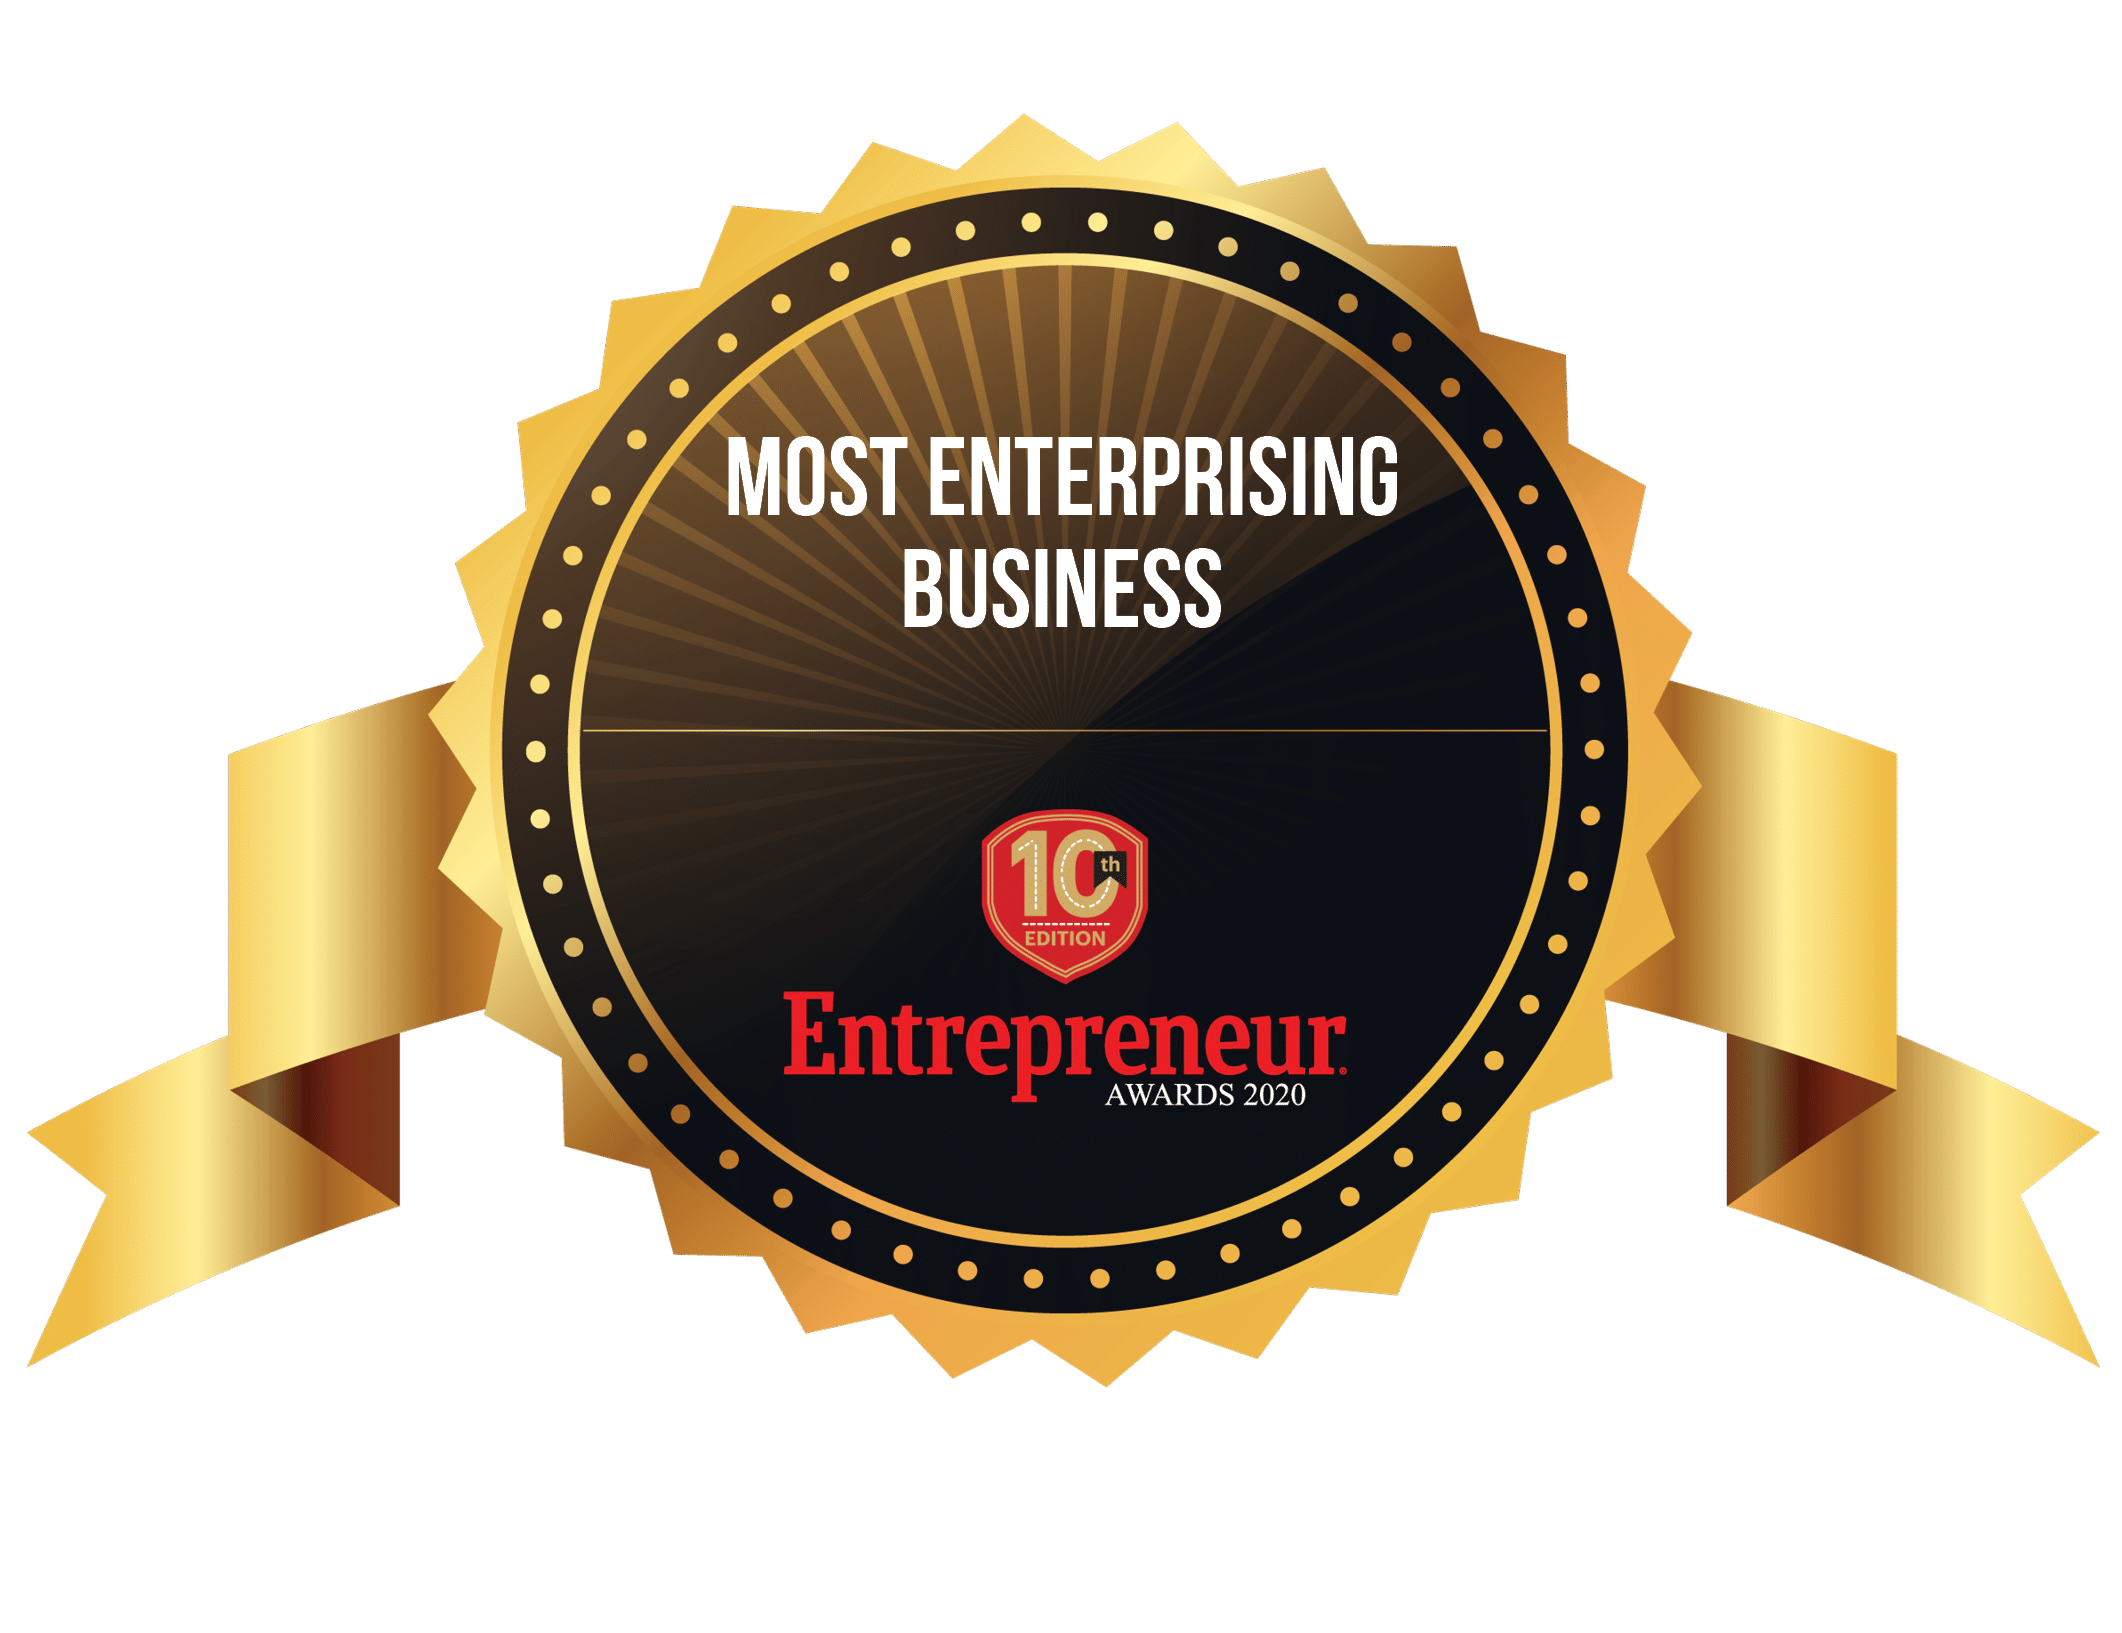 Award banner for 'Most Enterprising Business' from the 2020 Entrepreneur Awards 2020